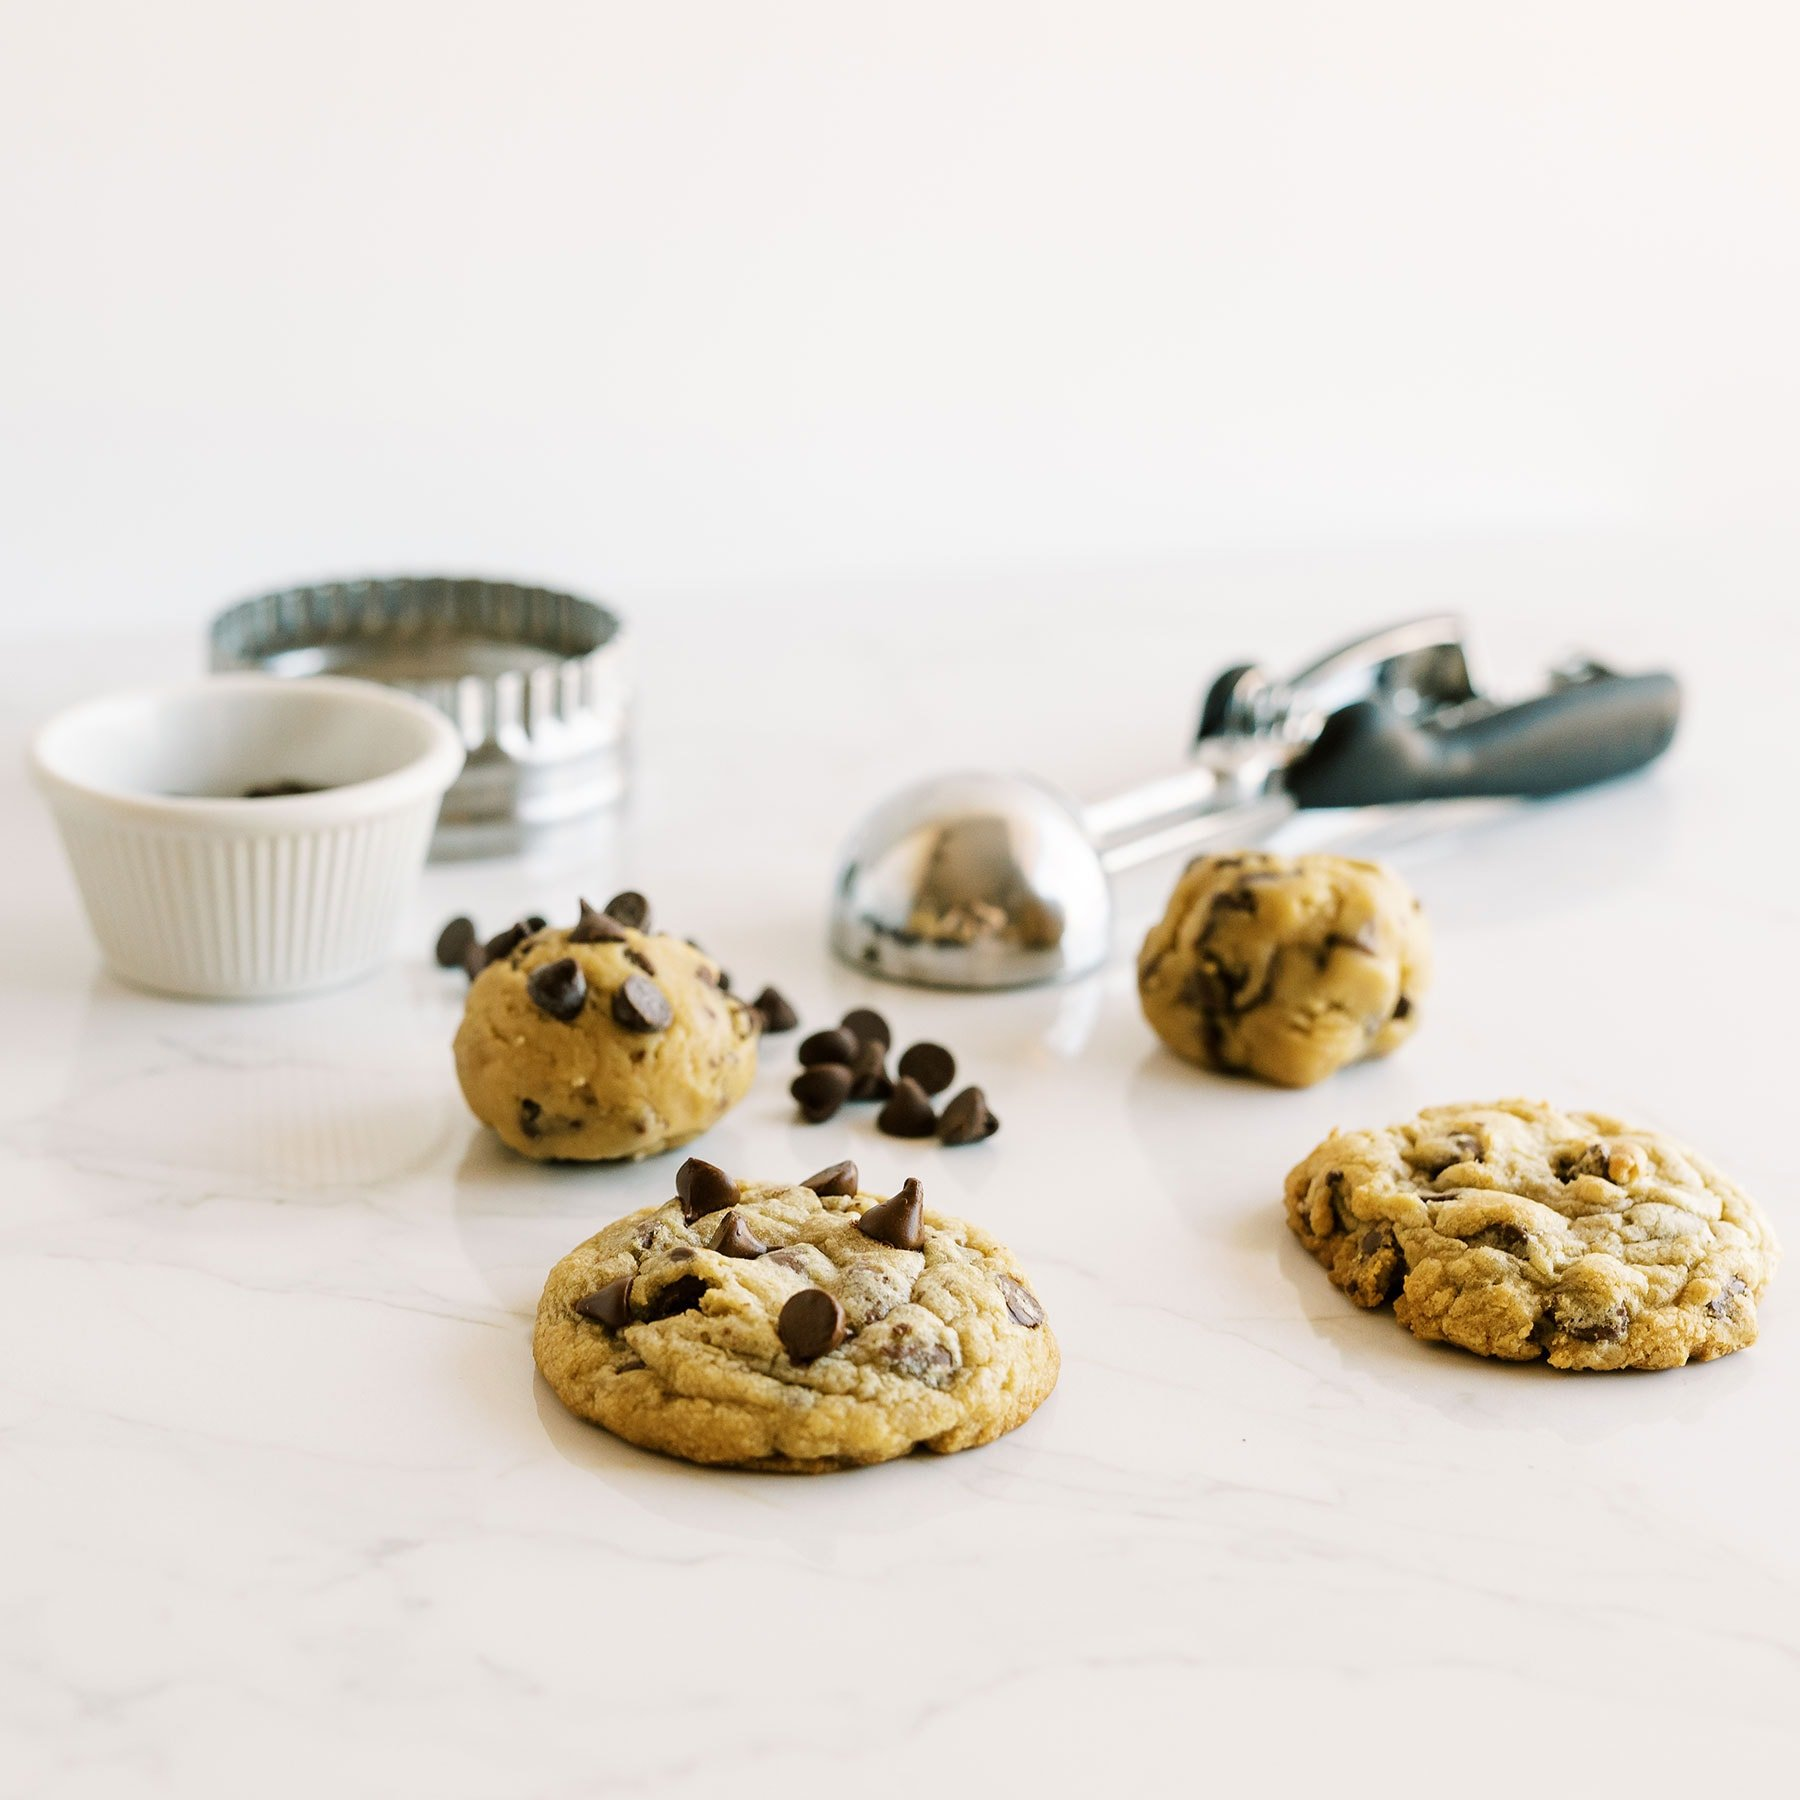 Cookie dough and baked cookies on a marble counter